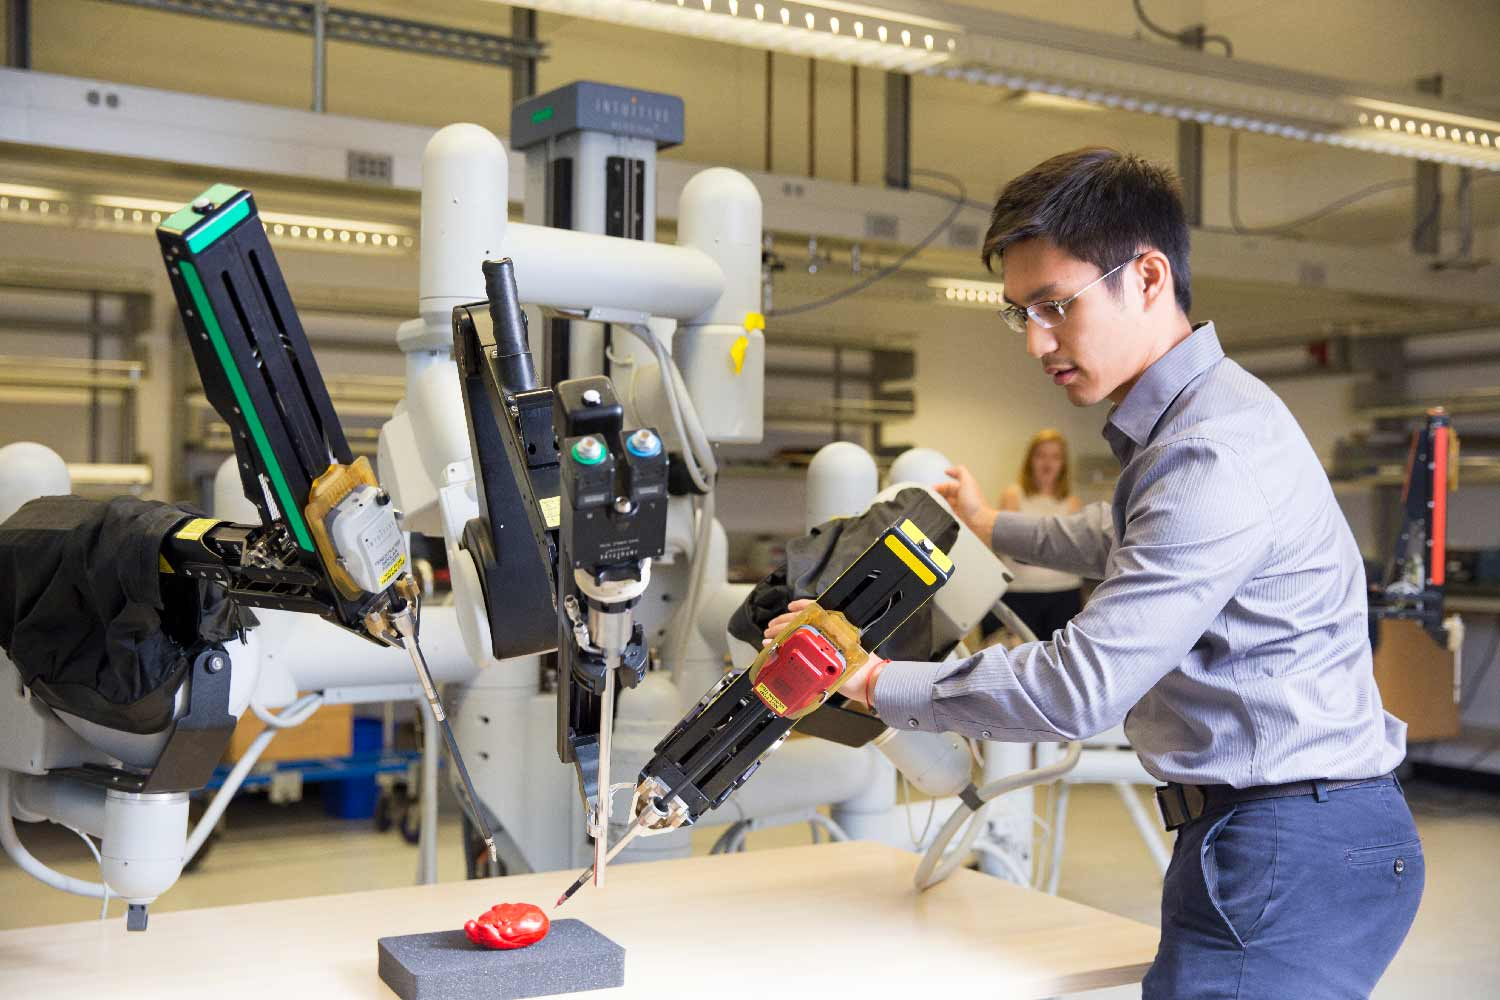 Engineers Developing Advanced Robotic Systems That Will